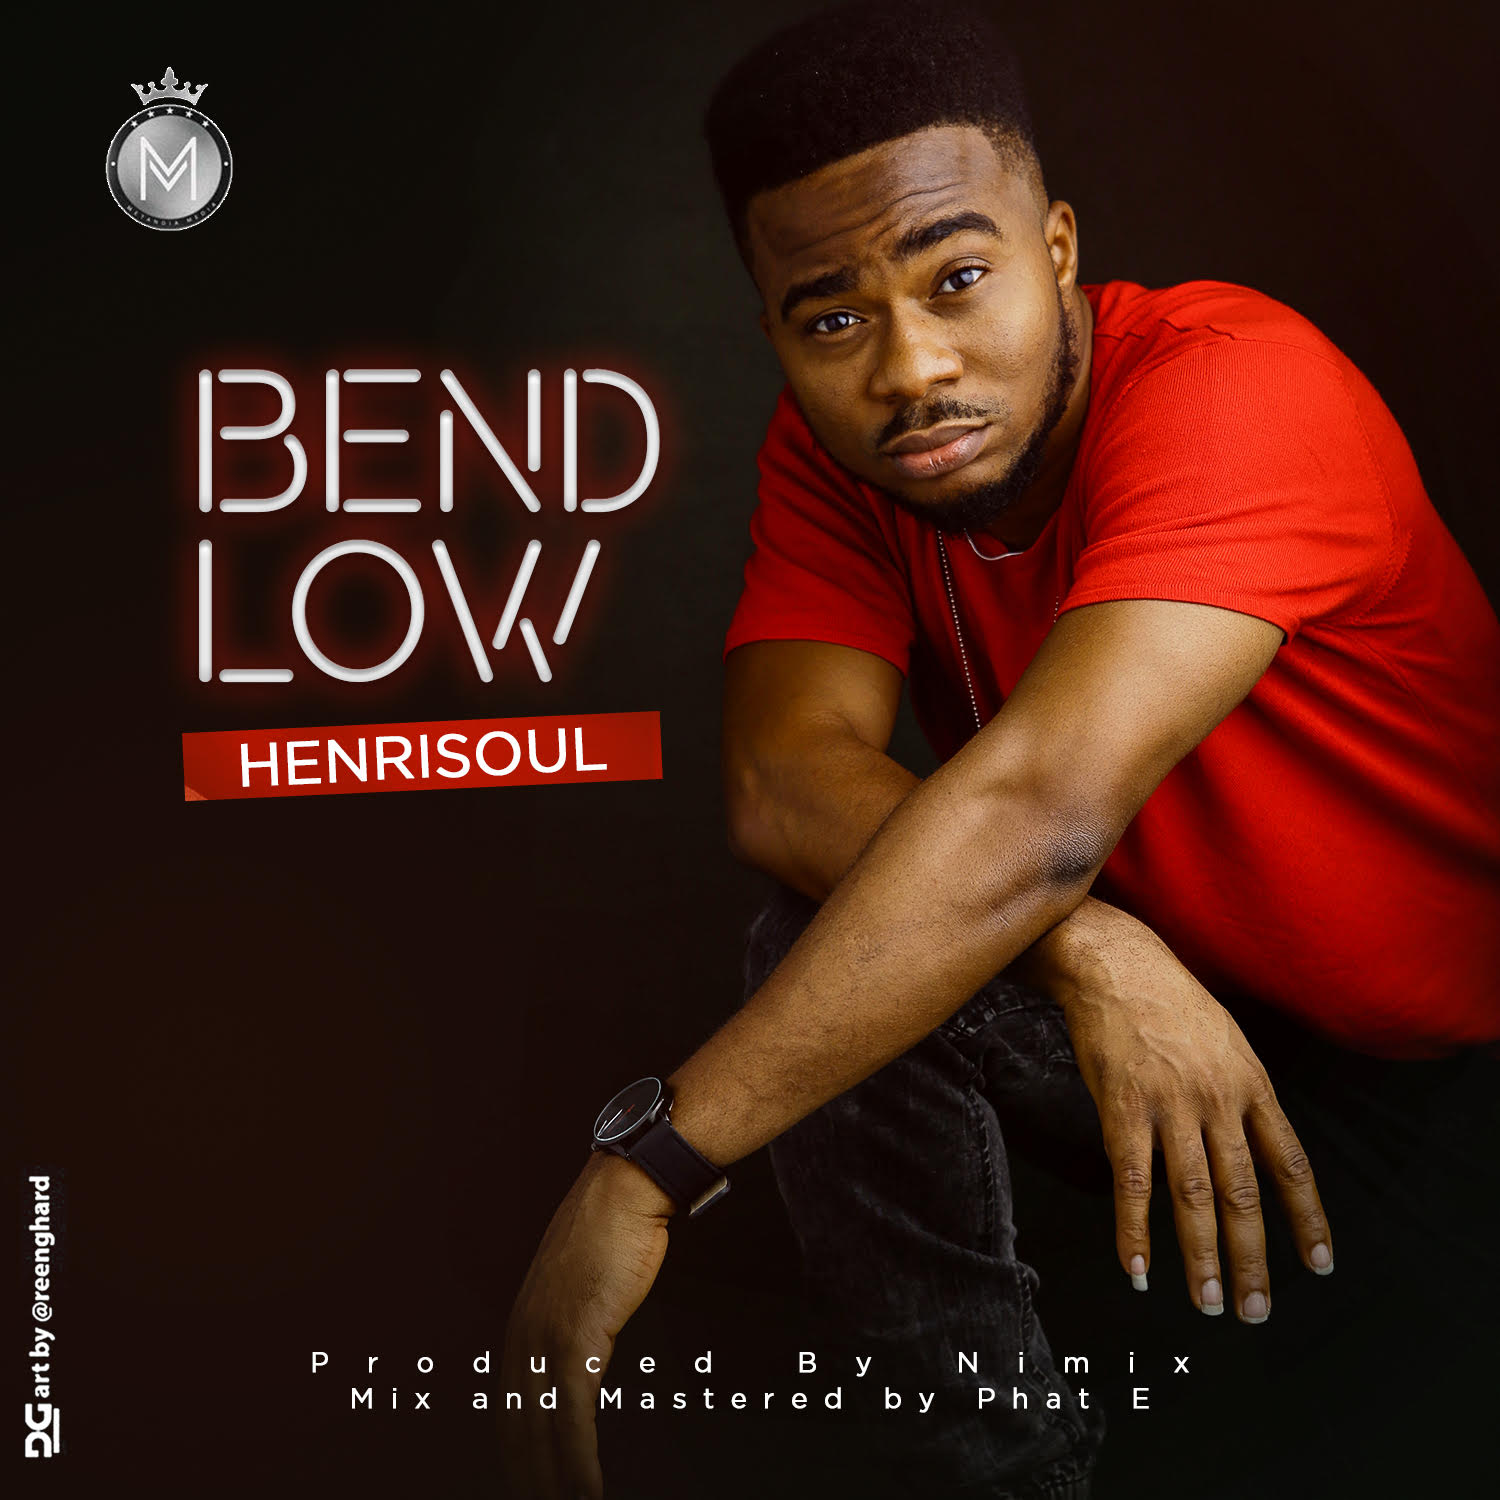 Henrisoul - Bend Low (Prod. By Nimix)